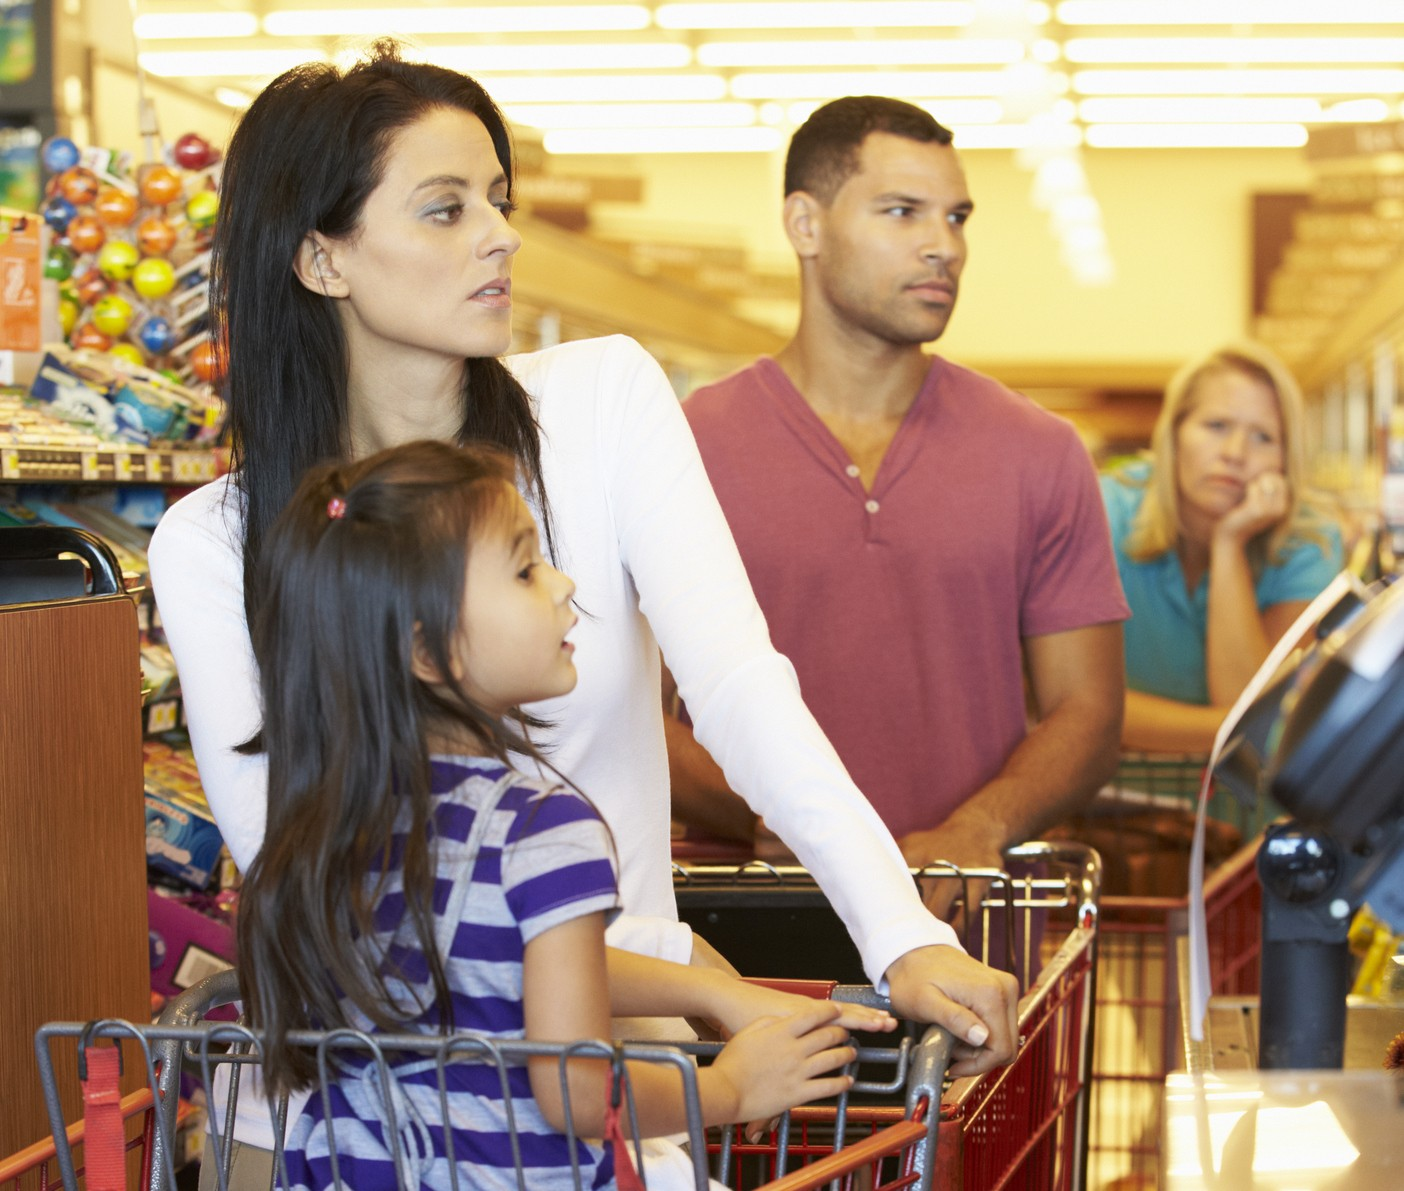 Customer In Queue To Pay For Shopping At Supermarket Checkout